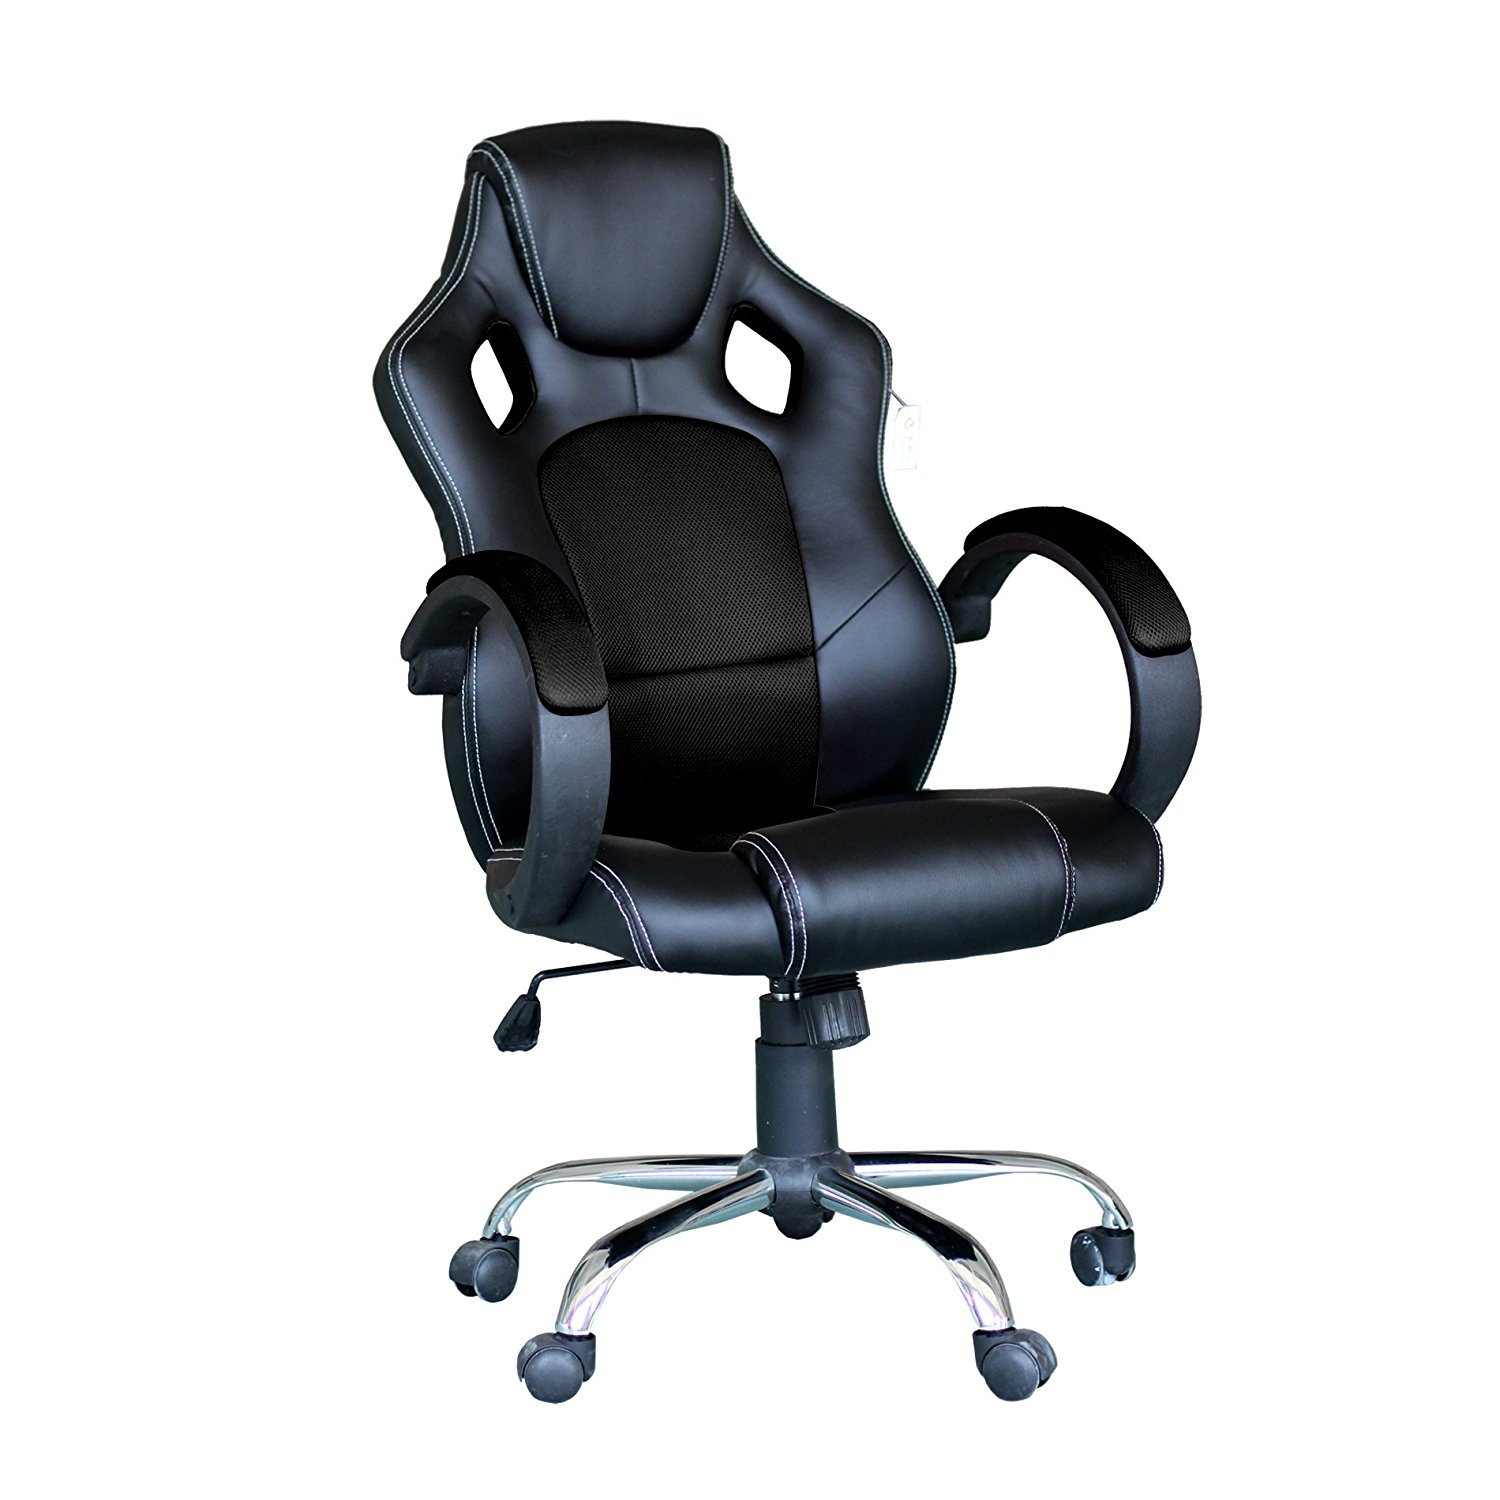 EBS Video Gaming Chair Home Office Computer Chair with Height Adjustable Ergonomic Lumbar Support Mesh High Back Ra (Black)